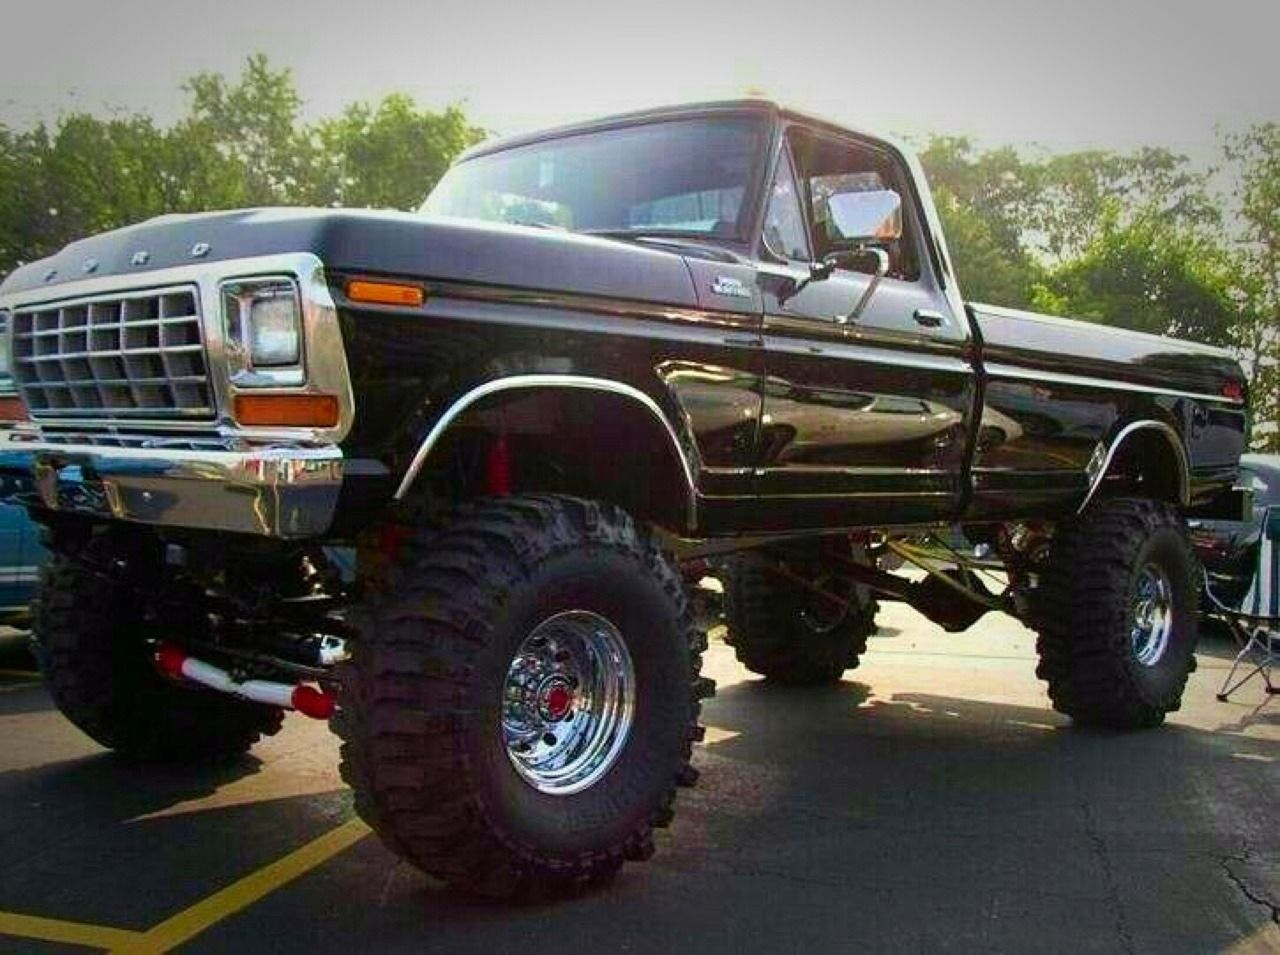 Pin by M Whitfill on The Right Stuff 79 ford truck, Ford